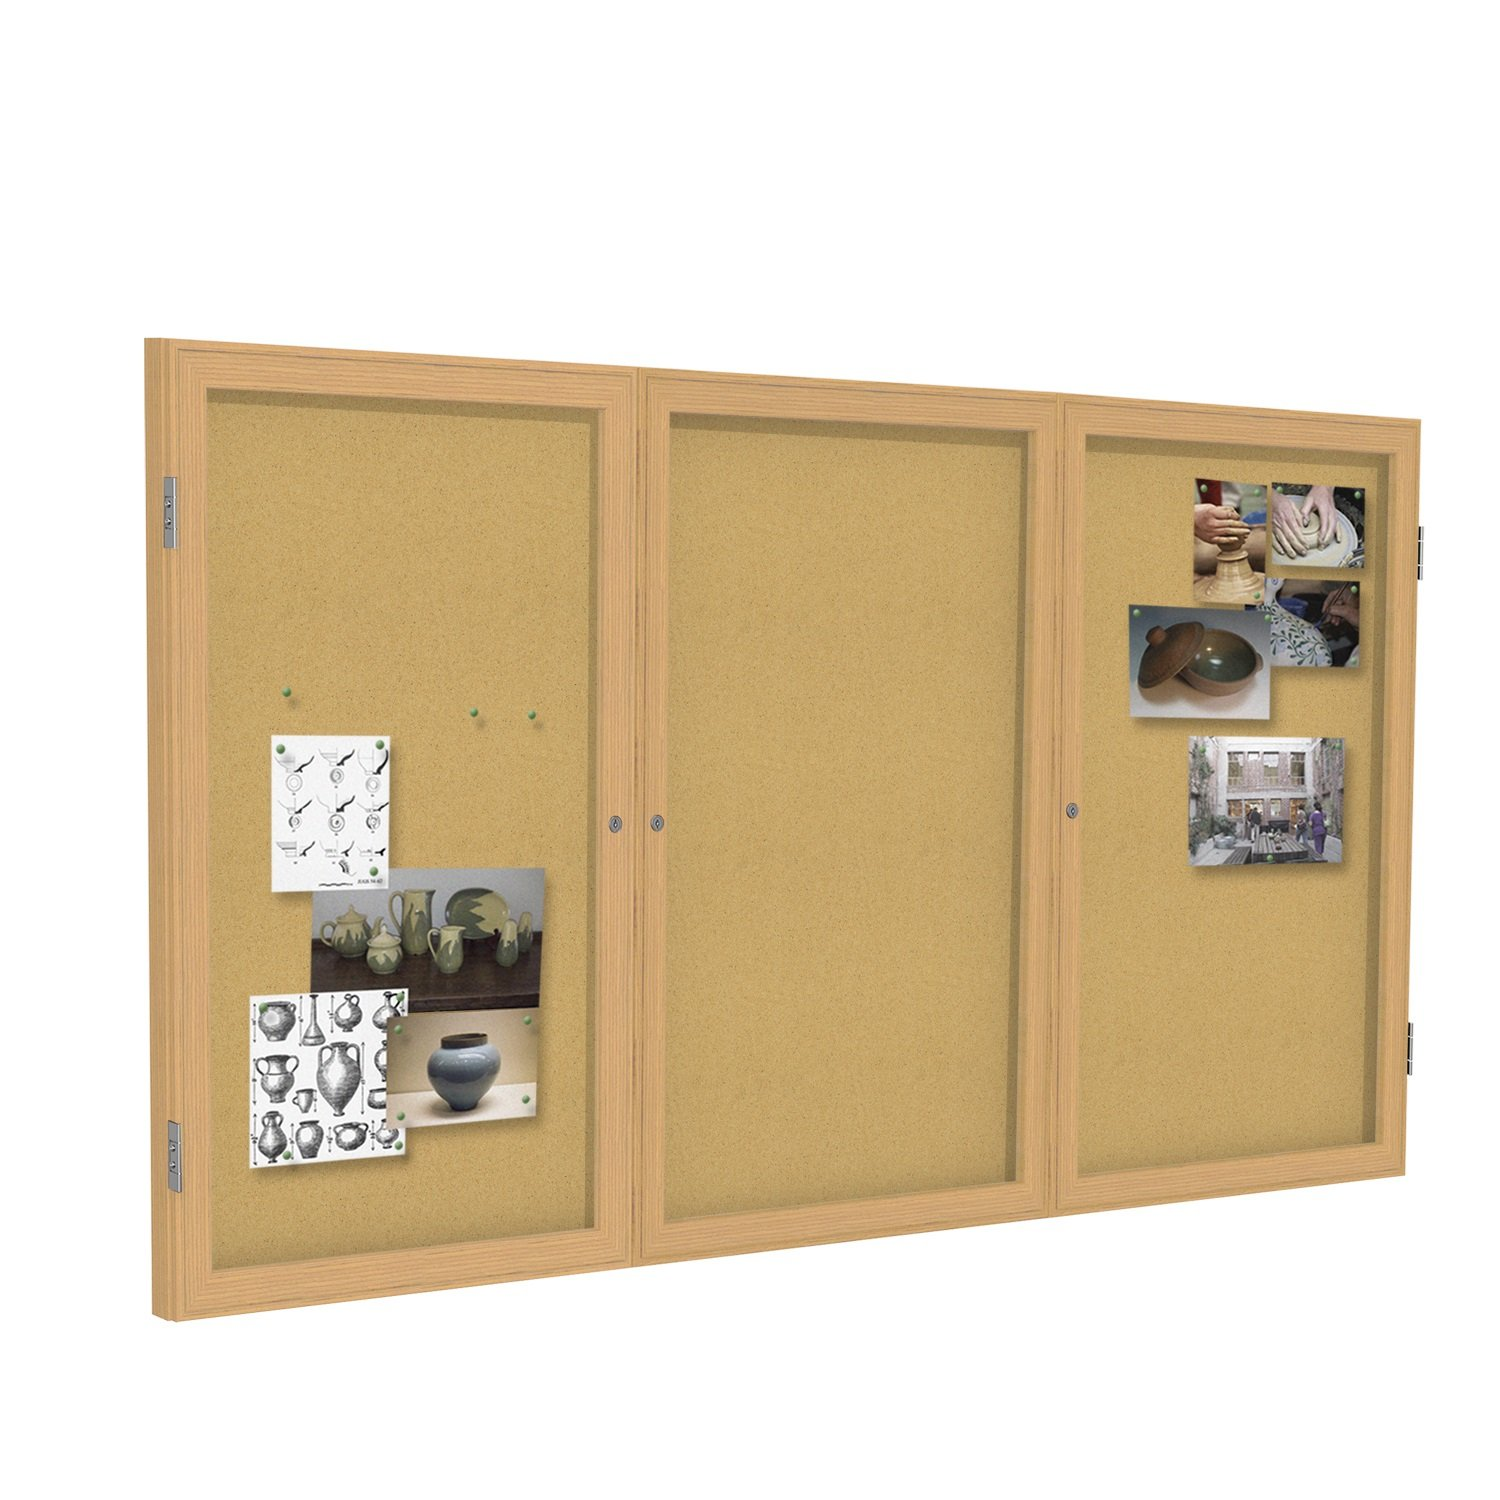 Ghent 36x24 1-Door indoor Enclosed Bulletin Board , Shatter Resistant, with Lock, Satin Aluminum Frame - Natural Cork (PA13624K) Made in the USA